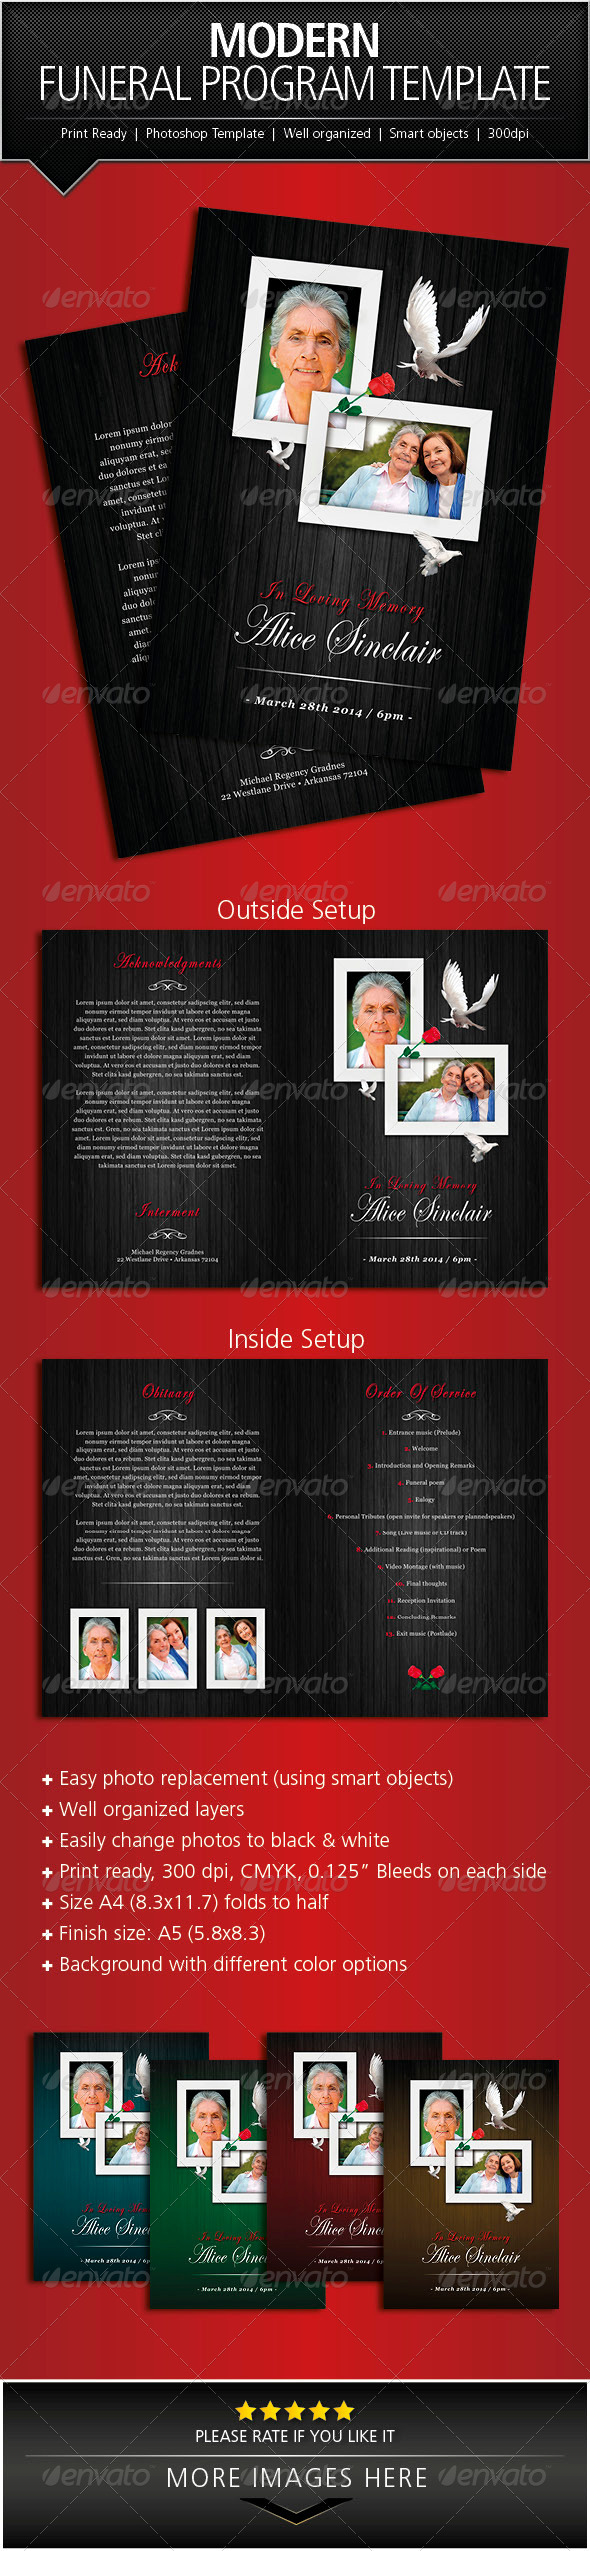 Modern Funeral Program Brochure Template By Designs4U About The TemplateThis Item Is A Elegant And Professional